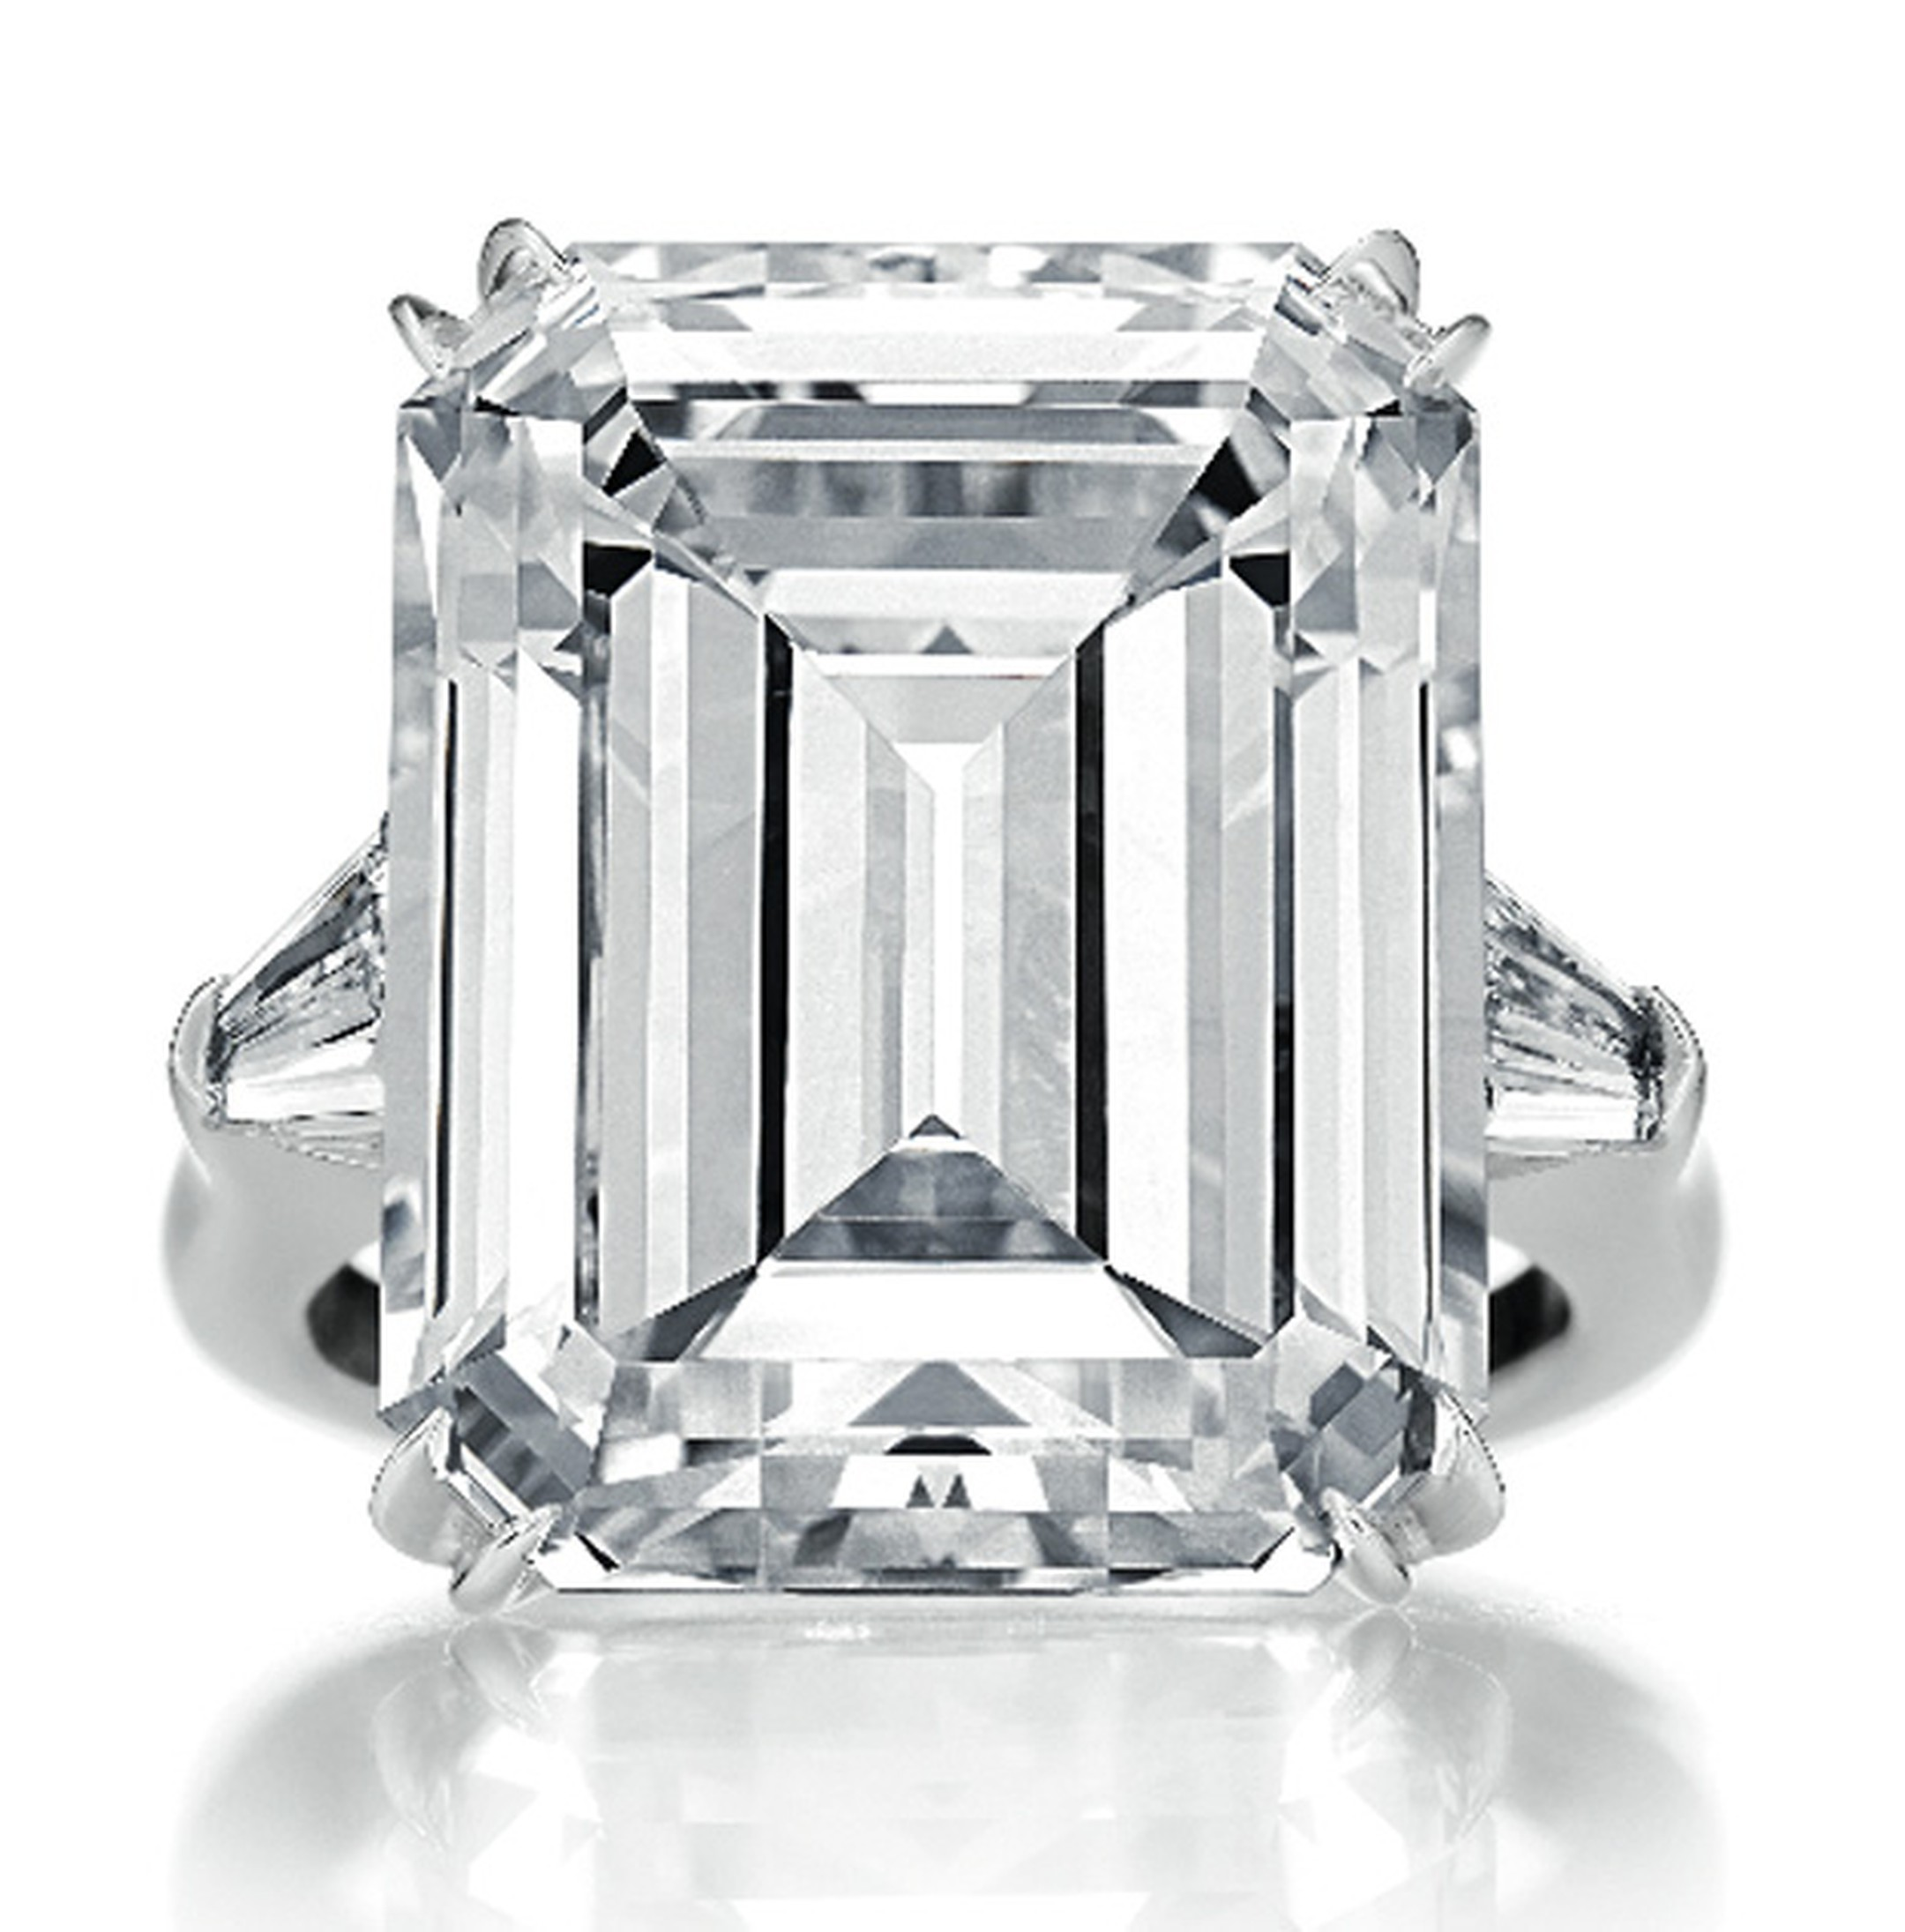 Harry Winston Classic emerald-cut diamond ring